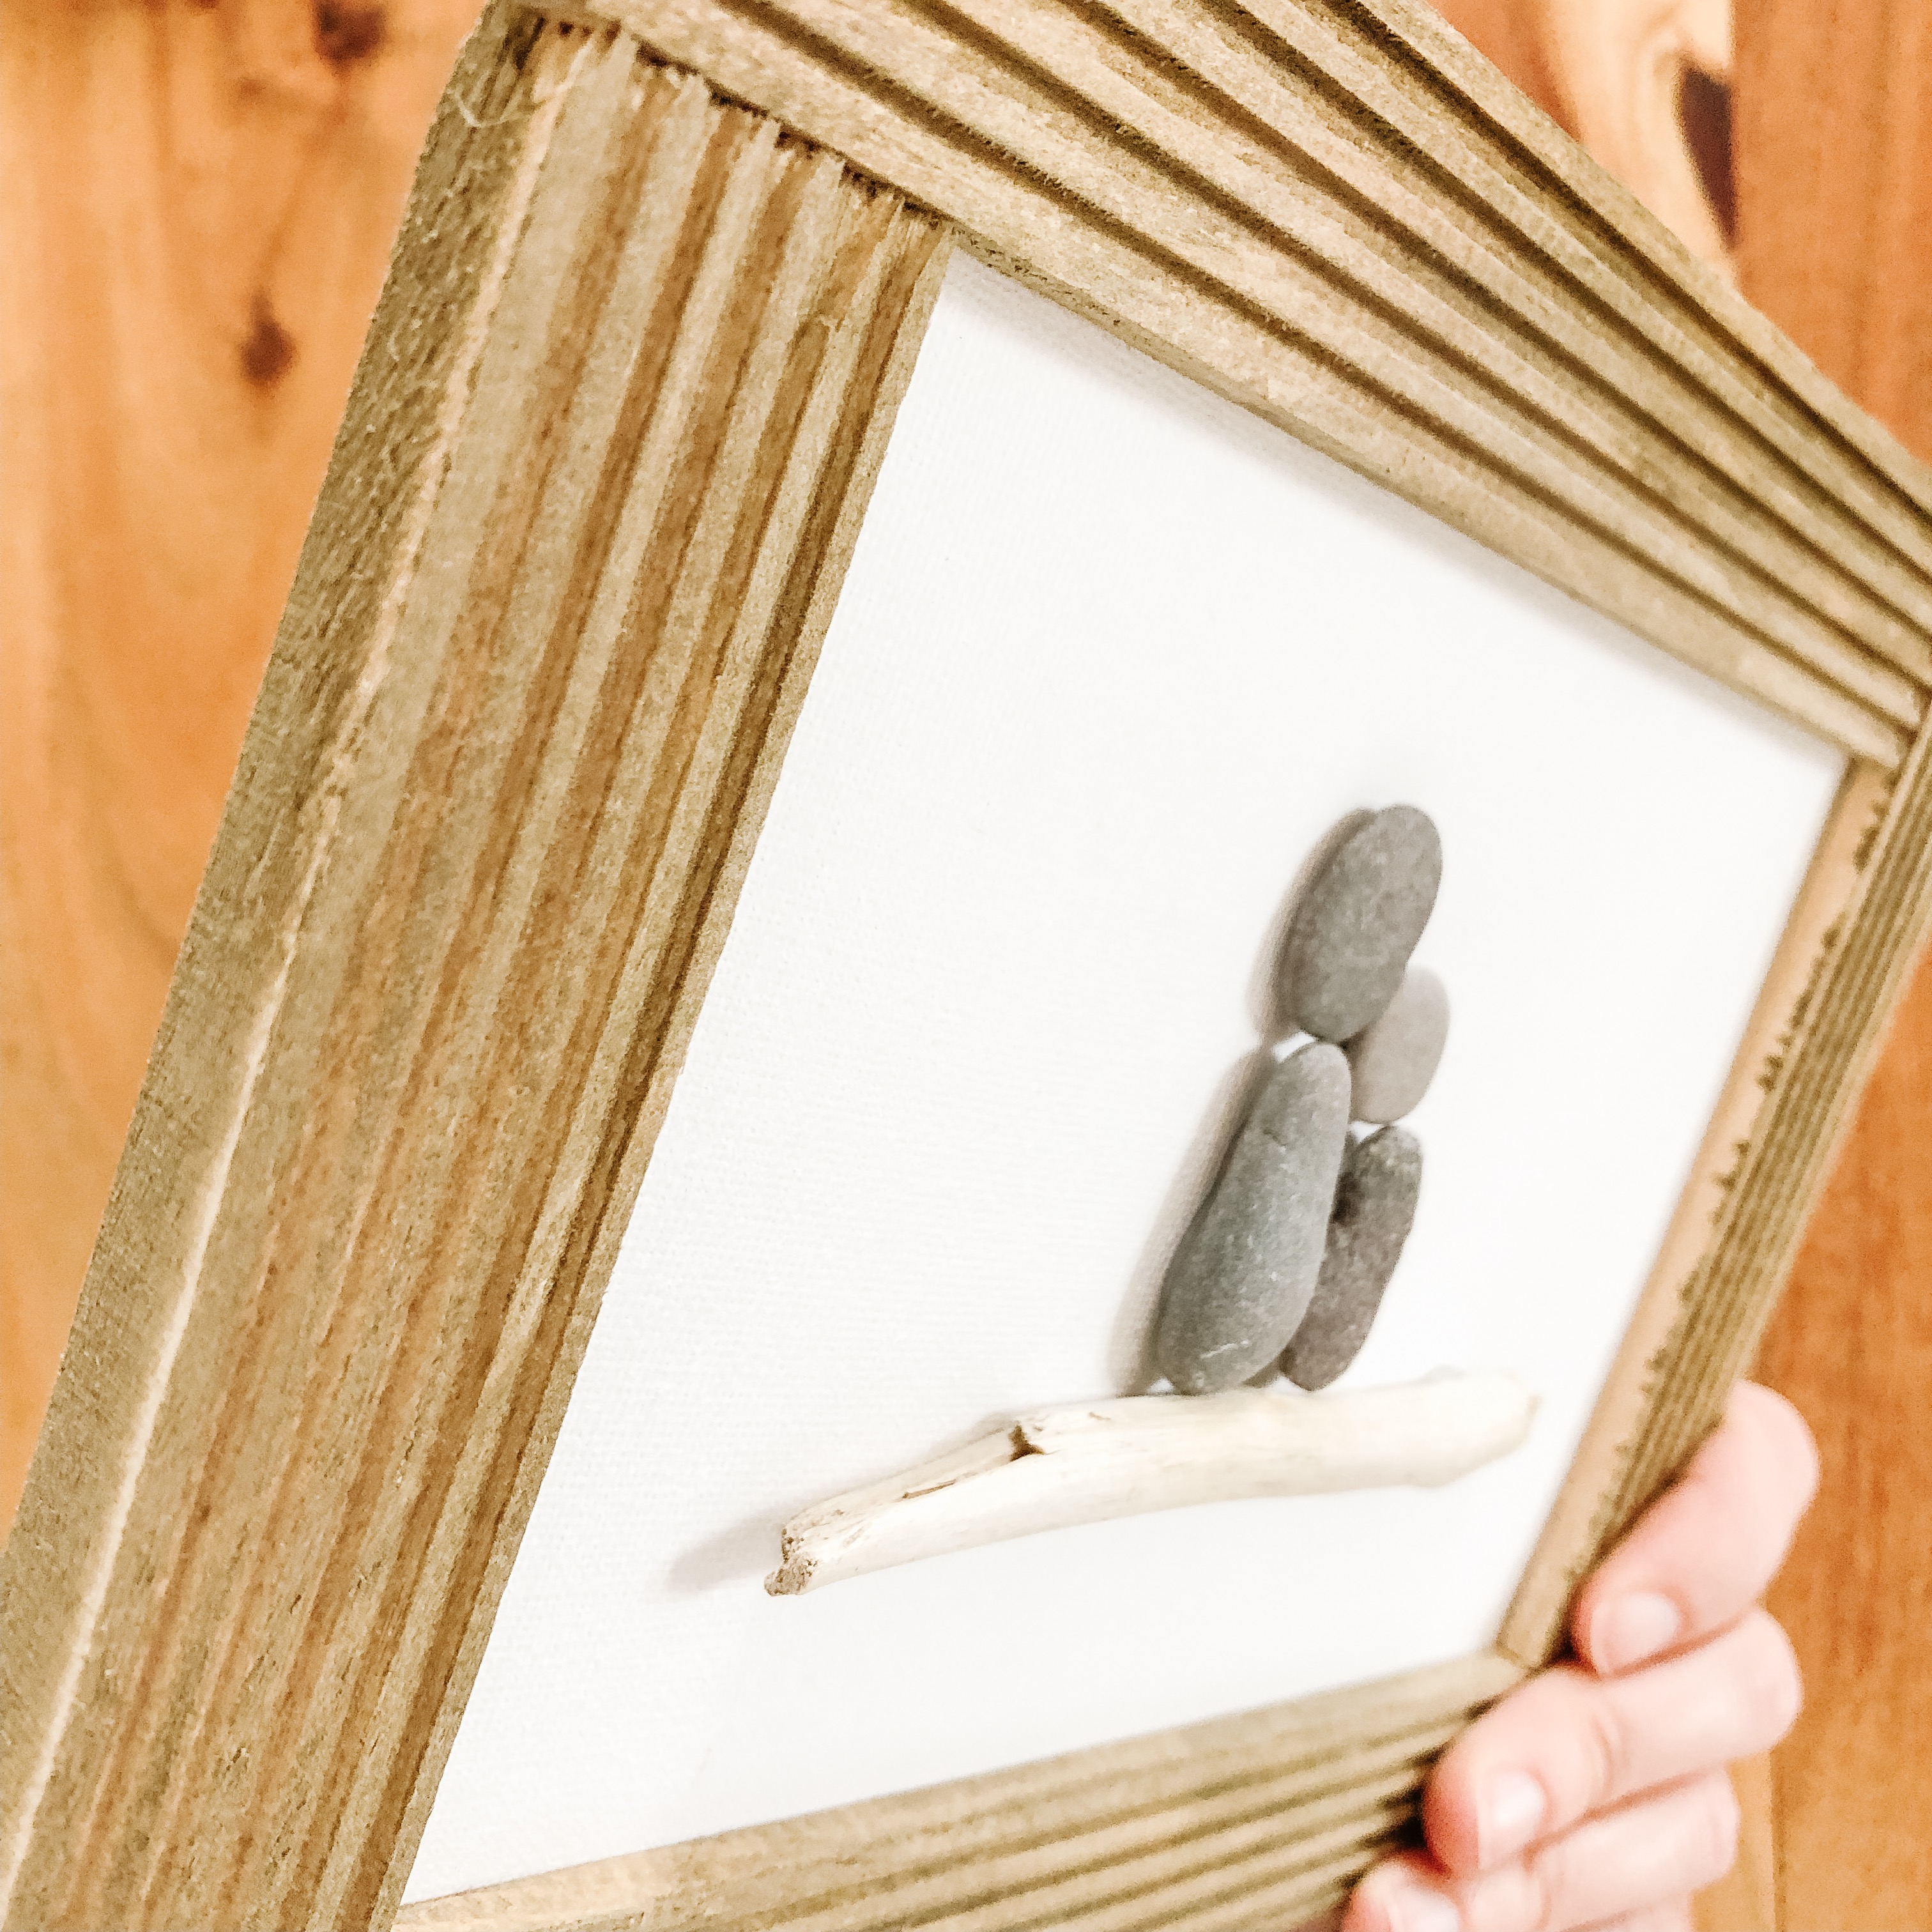 Rock Family Art displayed in frame